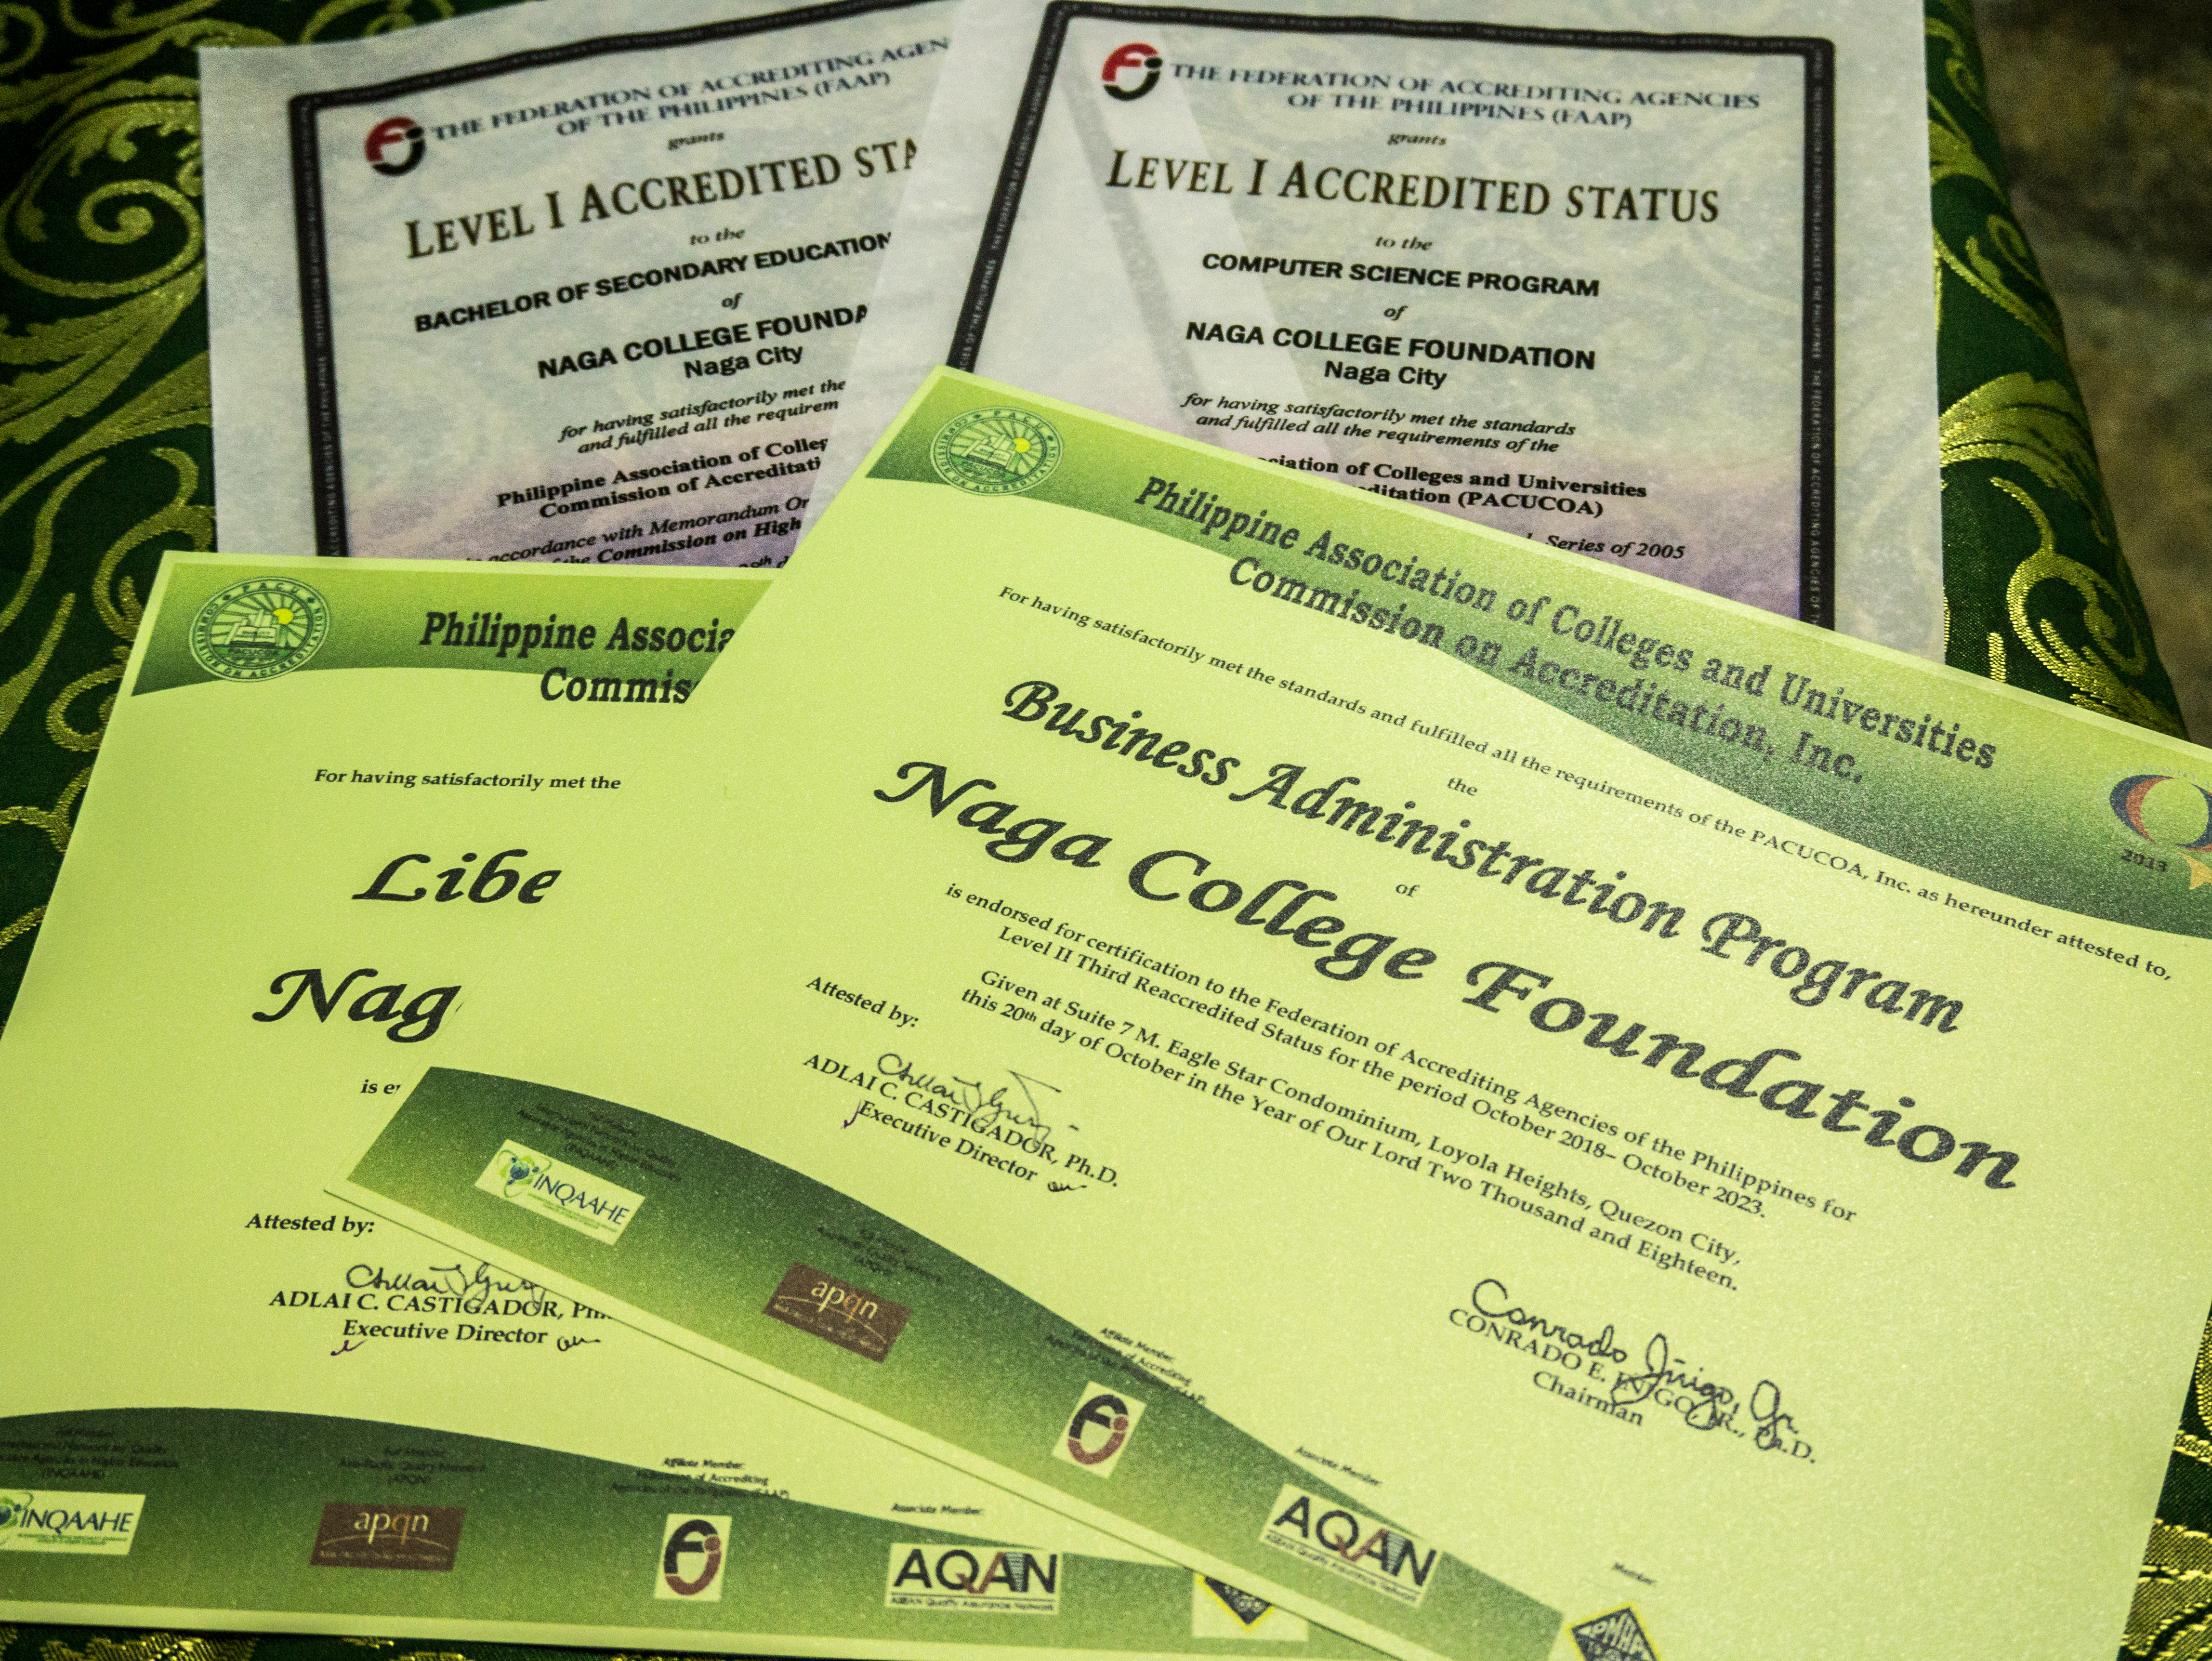 naga college foundation courses and programs